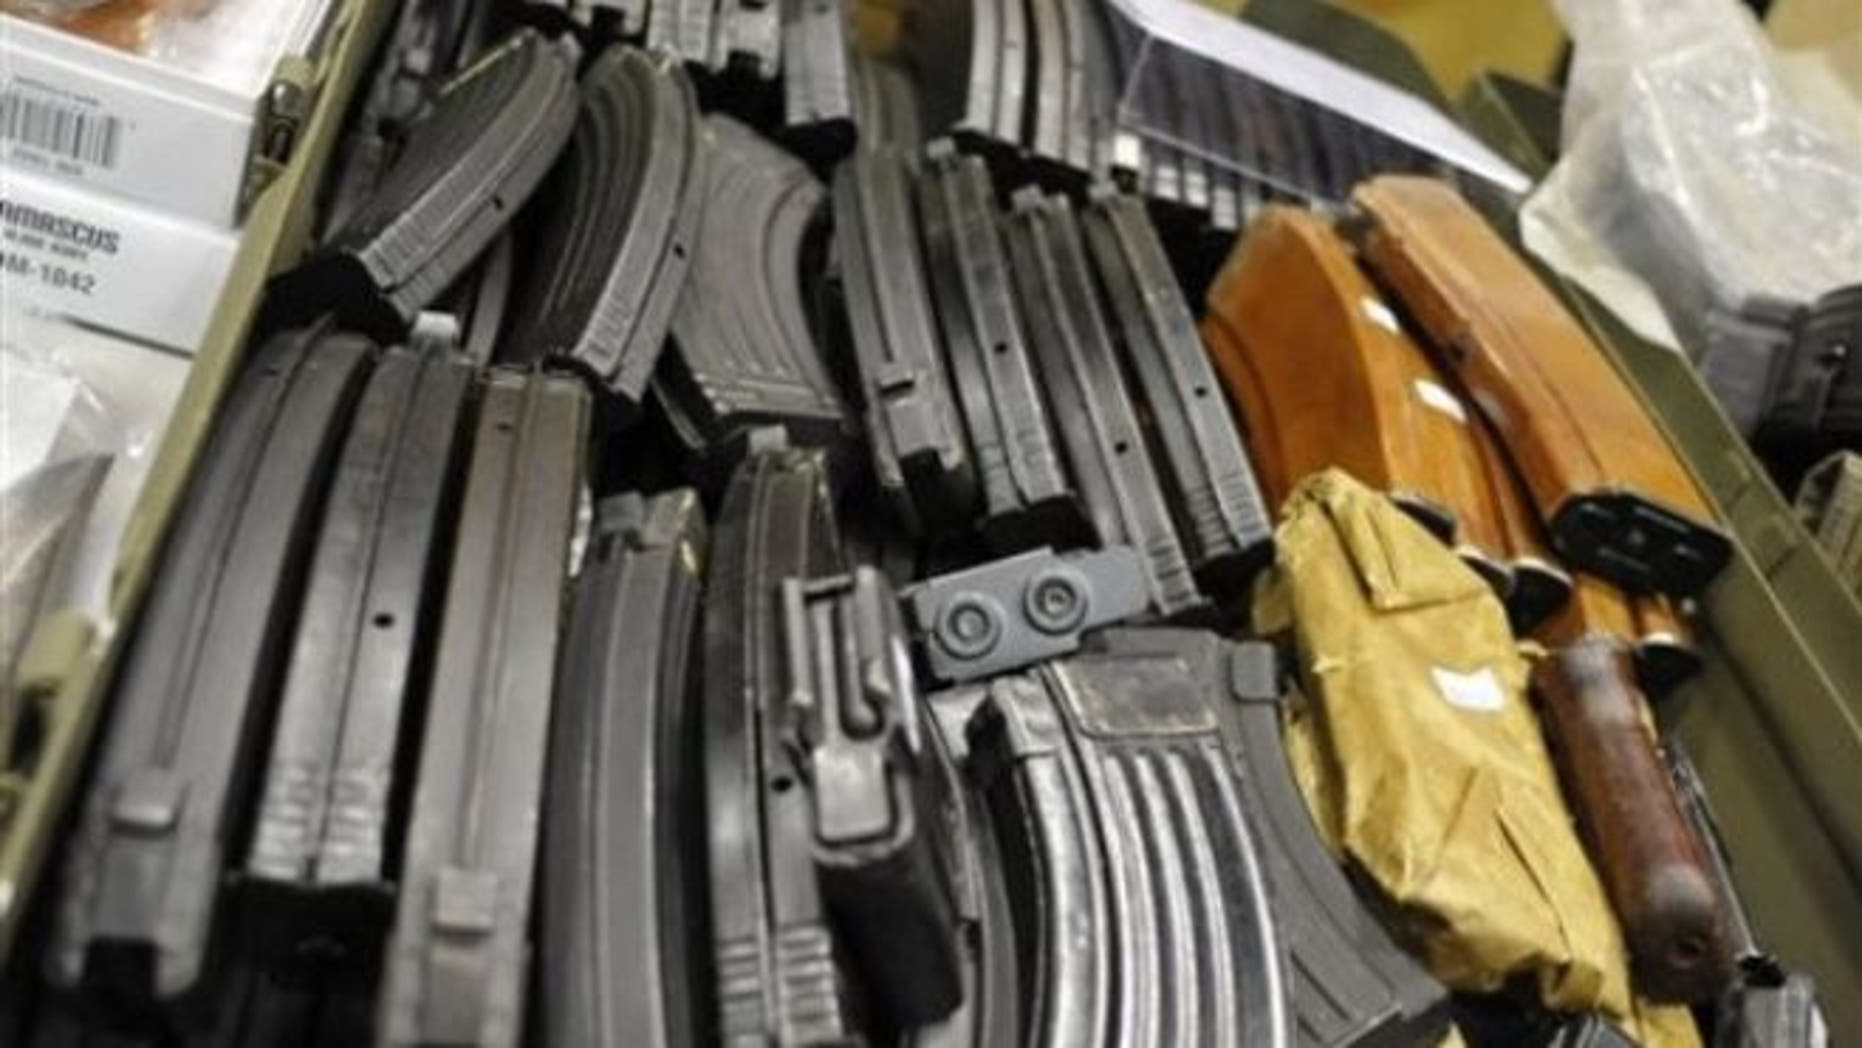 FILE: June 19, 2010: AK-47 assault rifle cartridges fill a box at a gun and knife show in White Plains, N.Y.